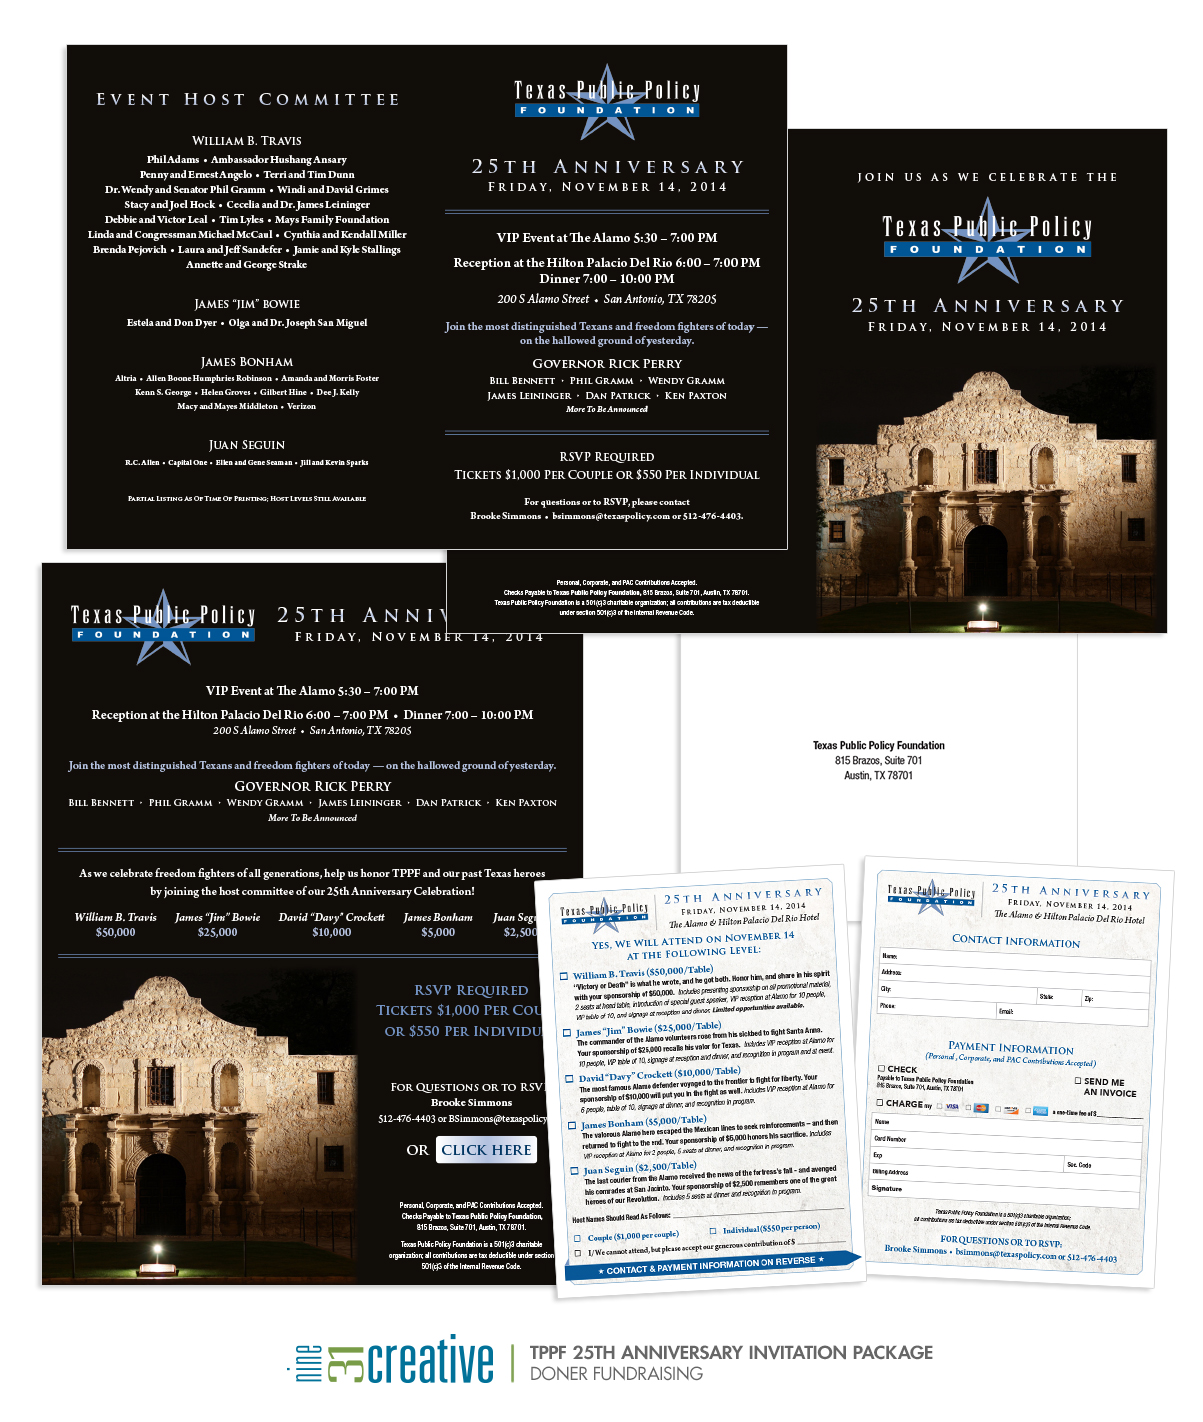 TPPF 25th Anniversary Invitation Package - Doner Fundraising